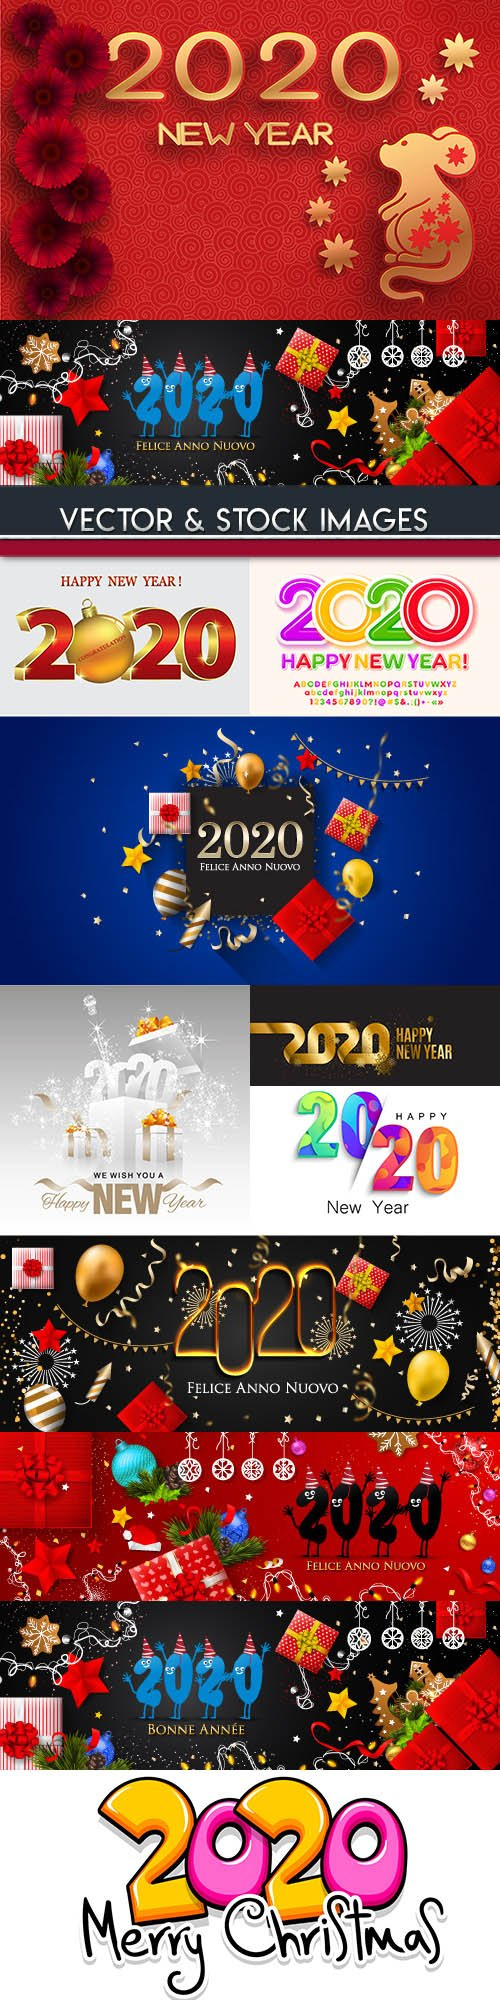 New Year and Christmas decorative 2020 symbol illustration